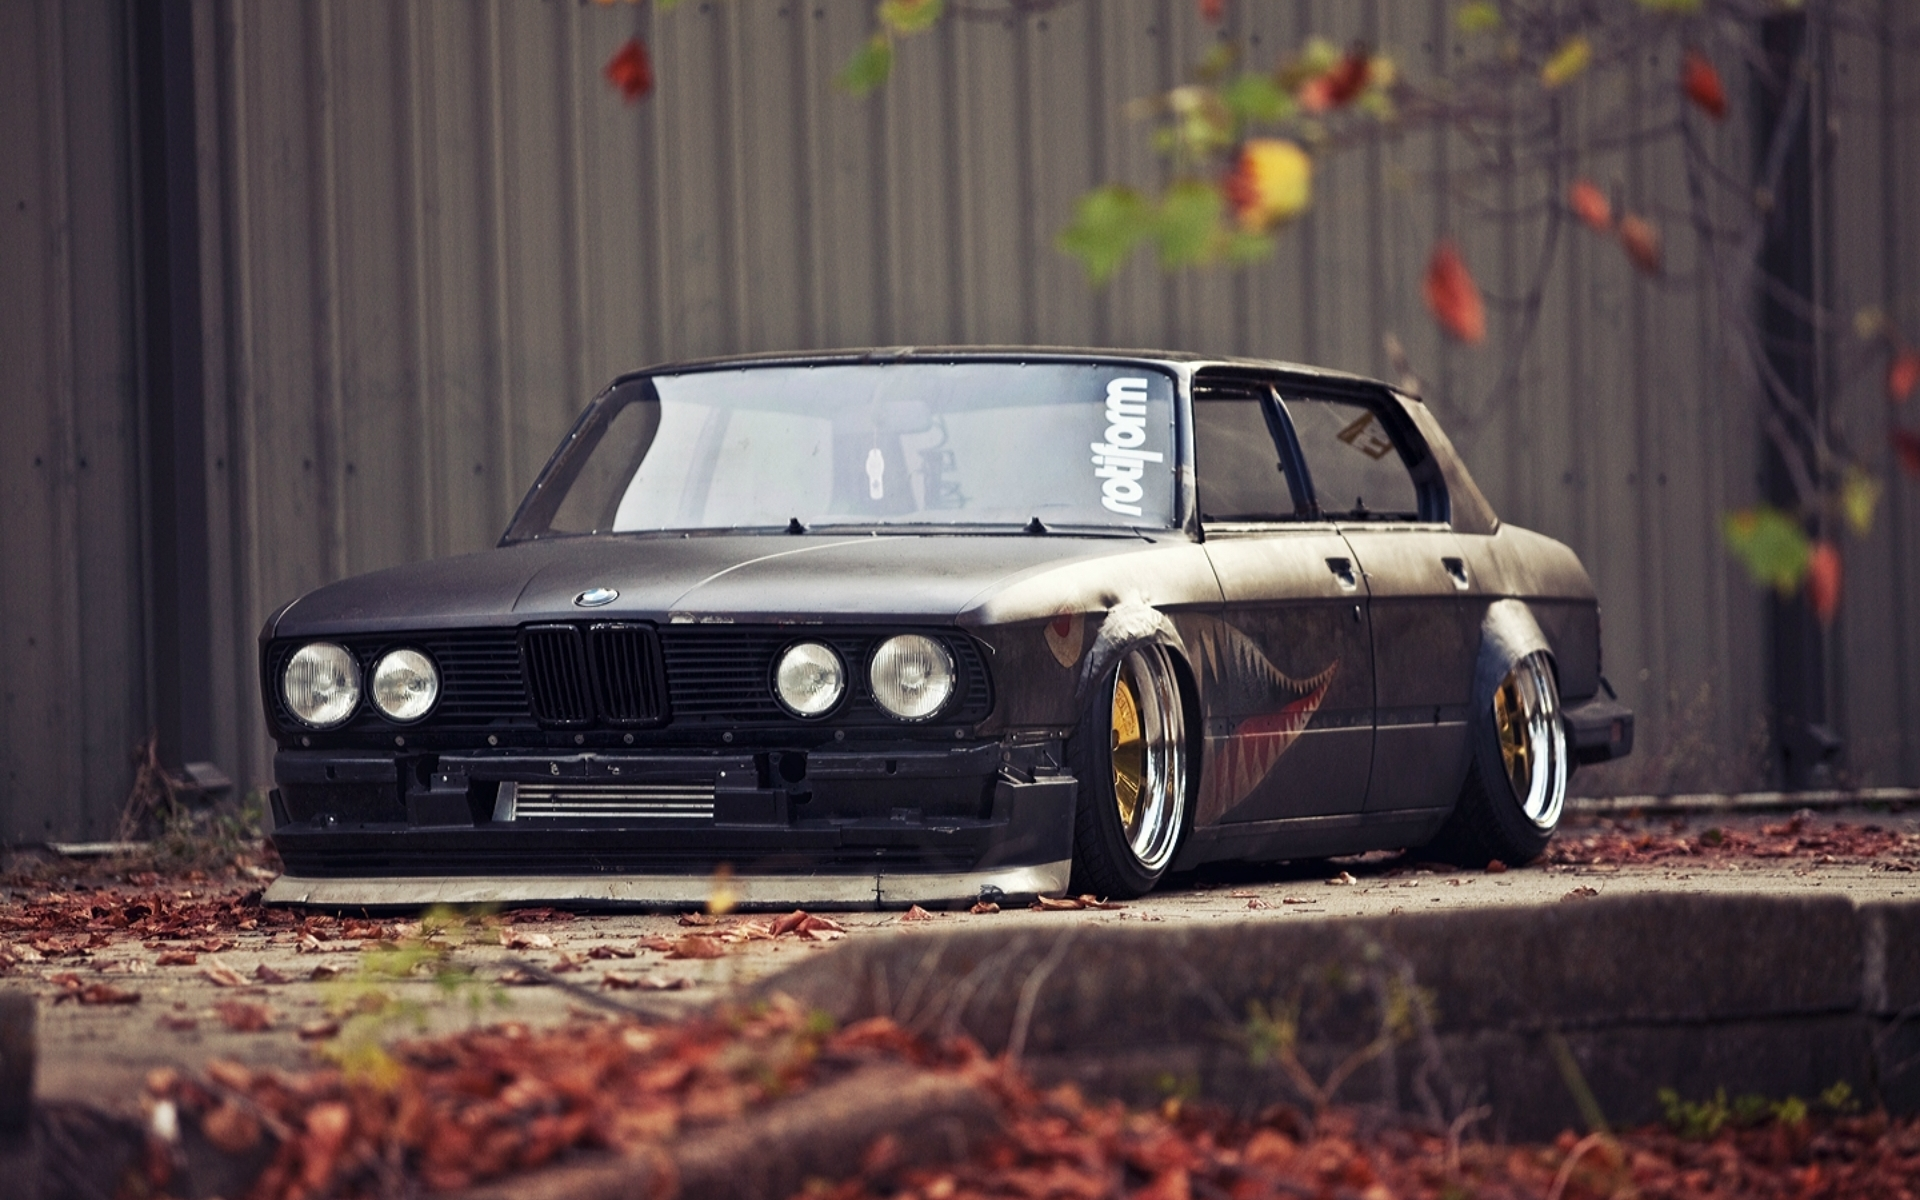 Bmw E38 740il Stance Tuning Boomer HD Wallpaper